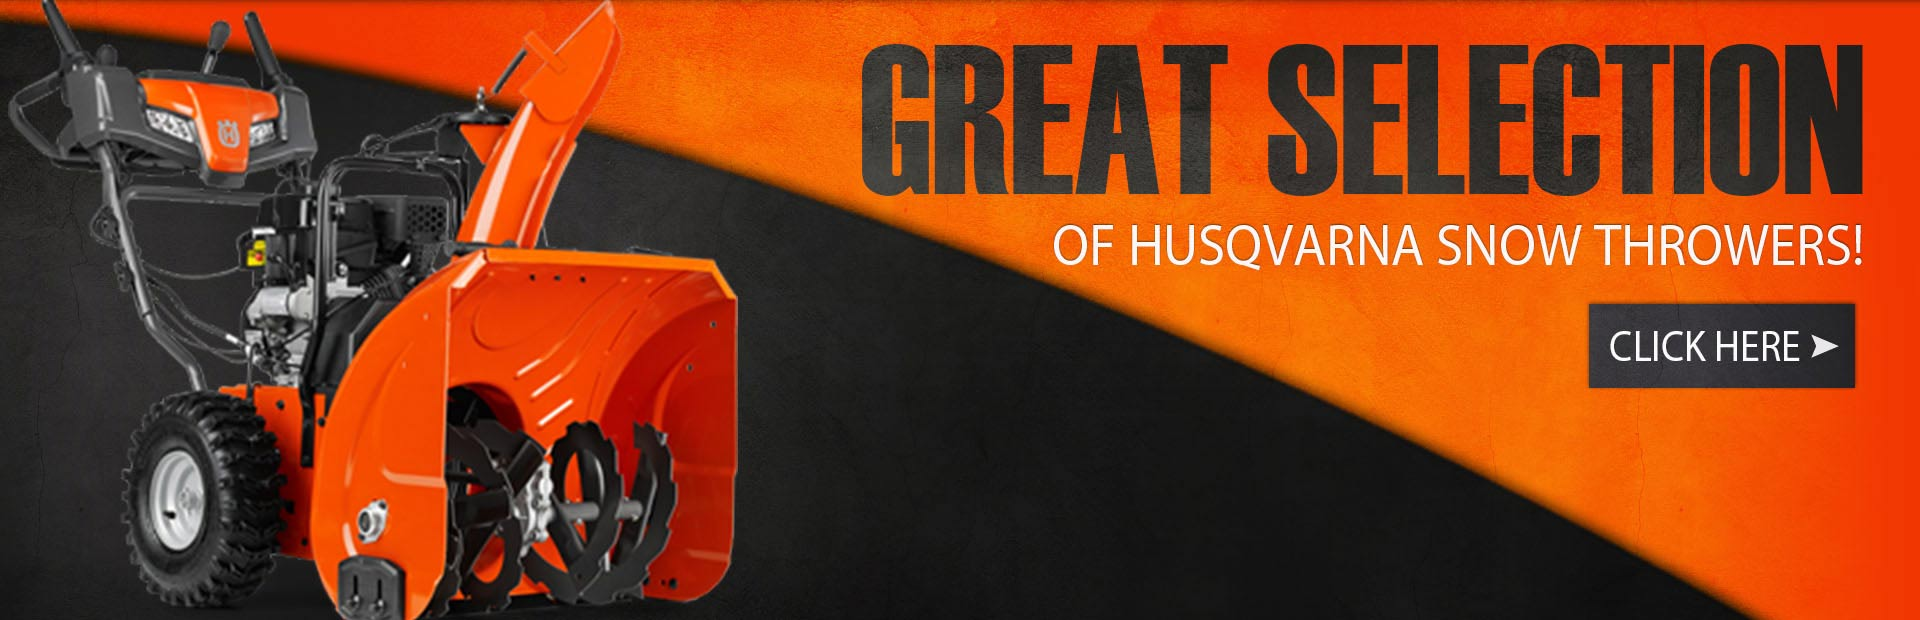 Click here to browse our great selection of Husqvarna snow throwers.